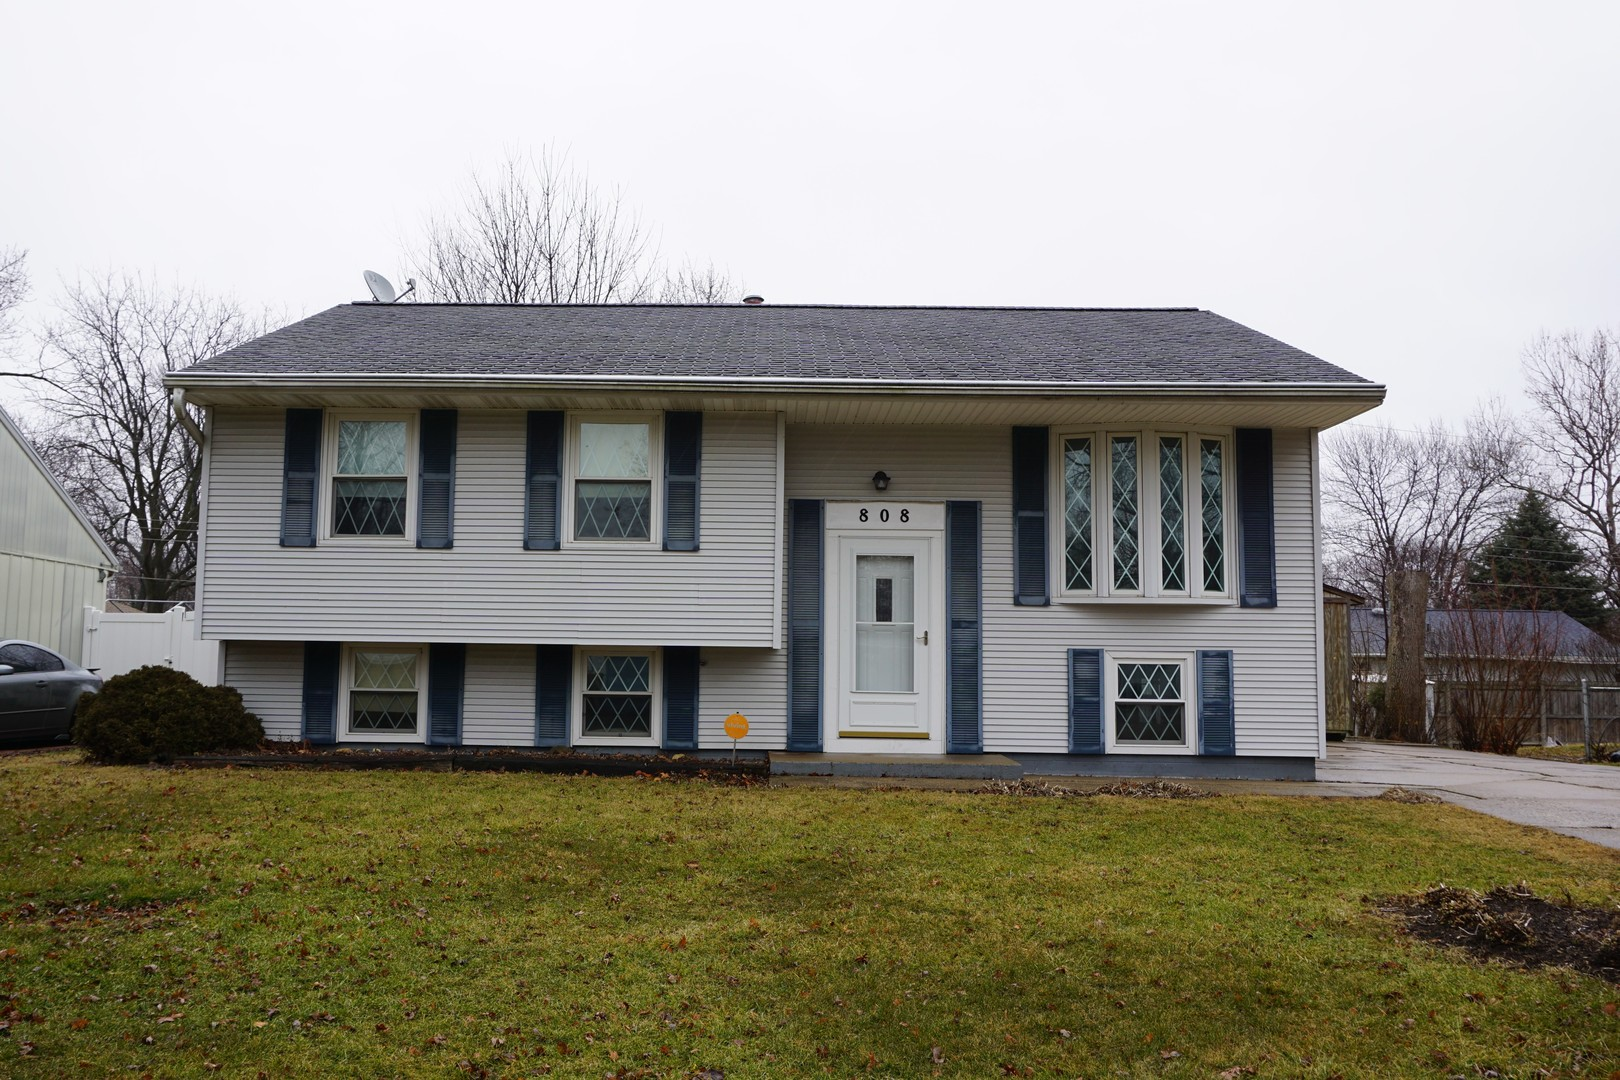 808 Maplepark Drive, Champaign in Champaign County, IL 61821 Home for Sale